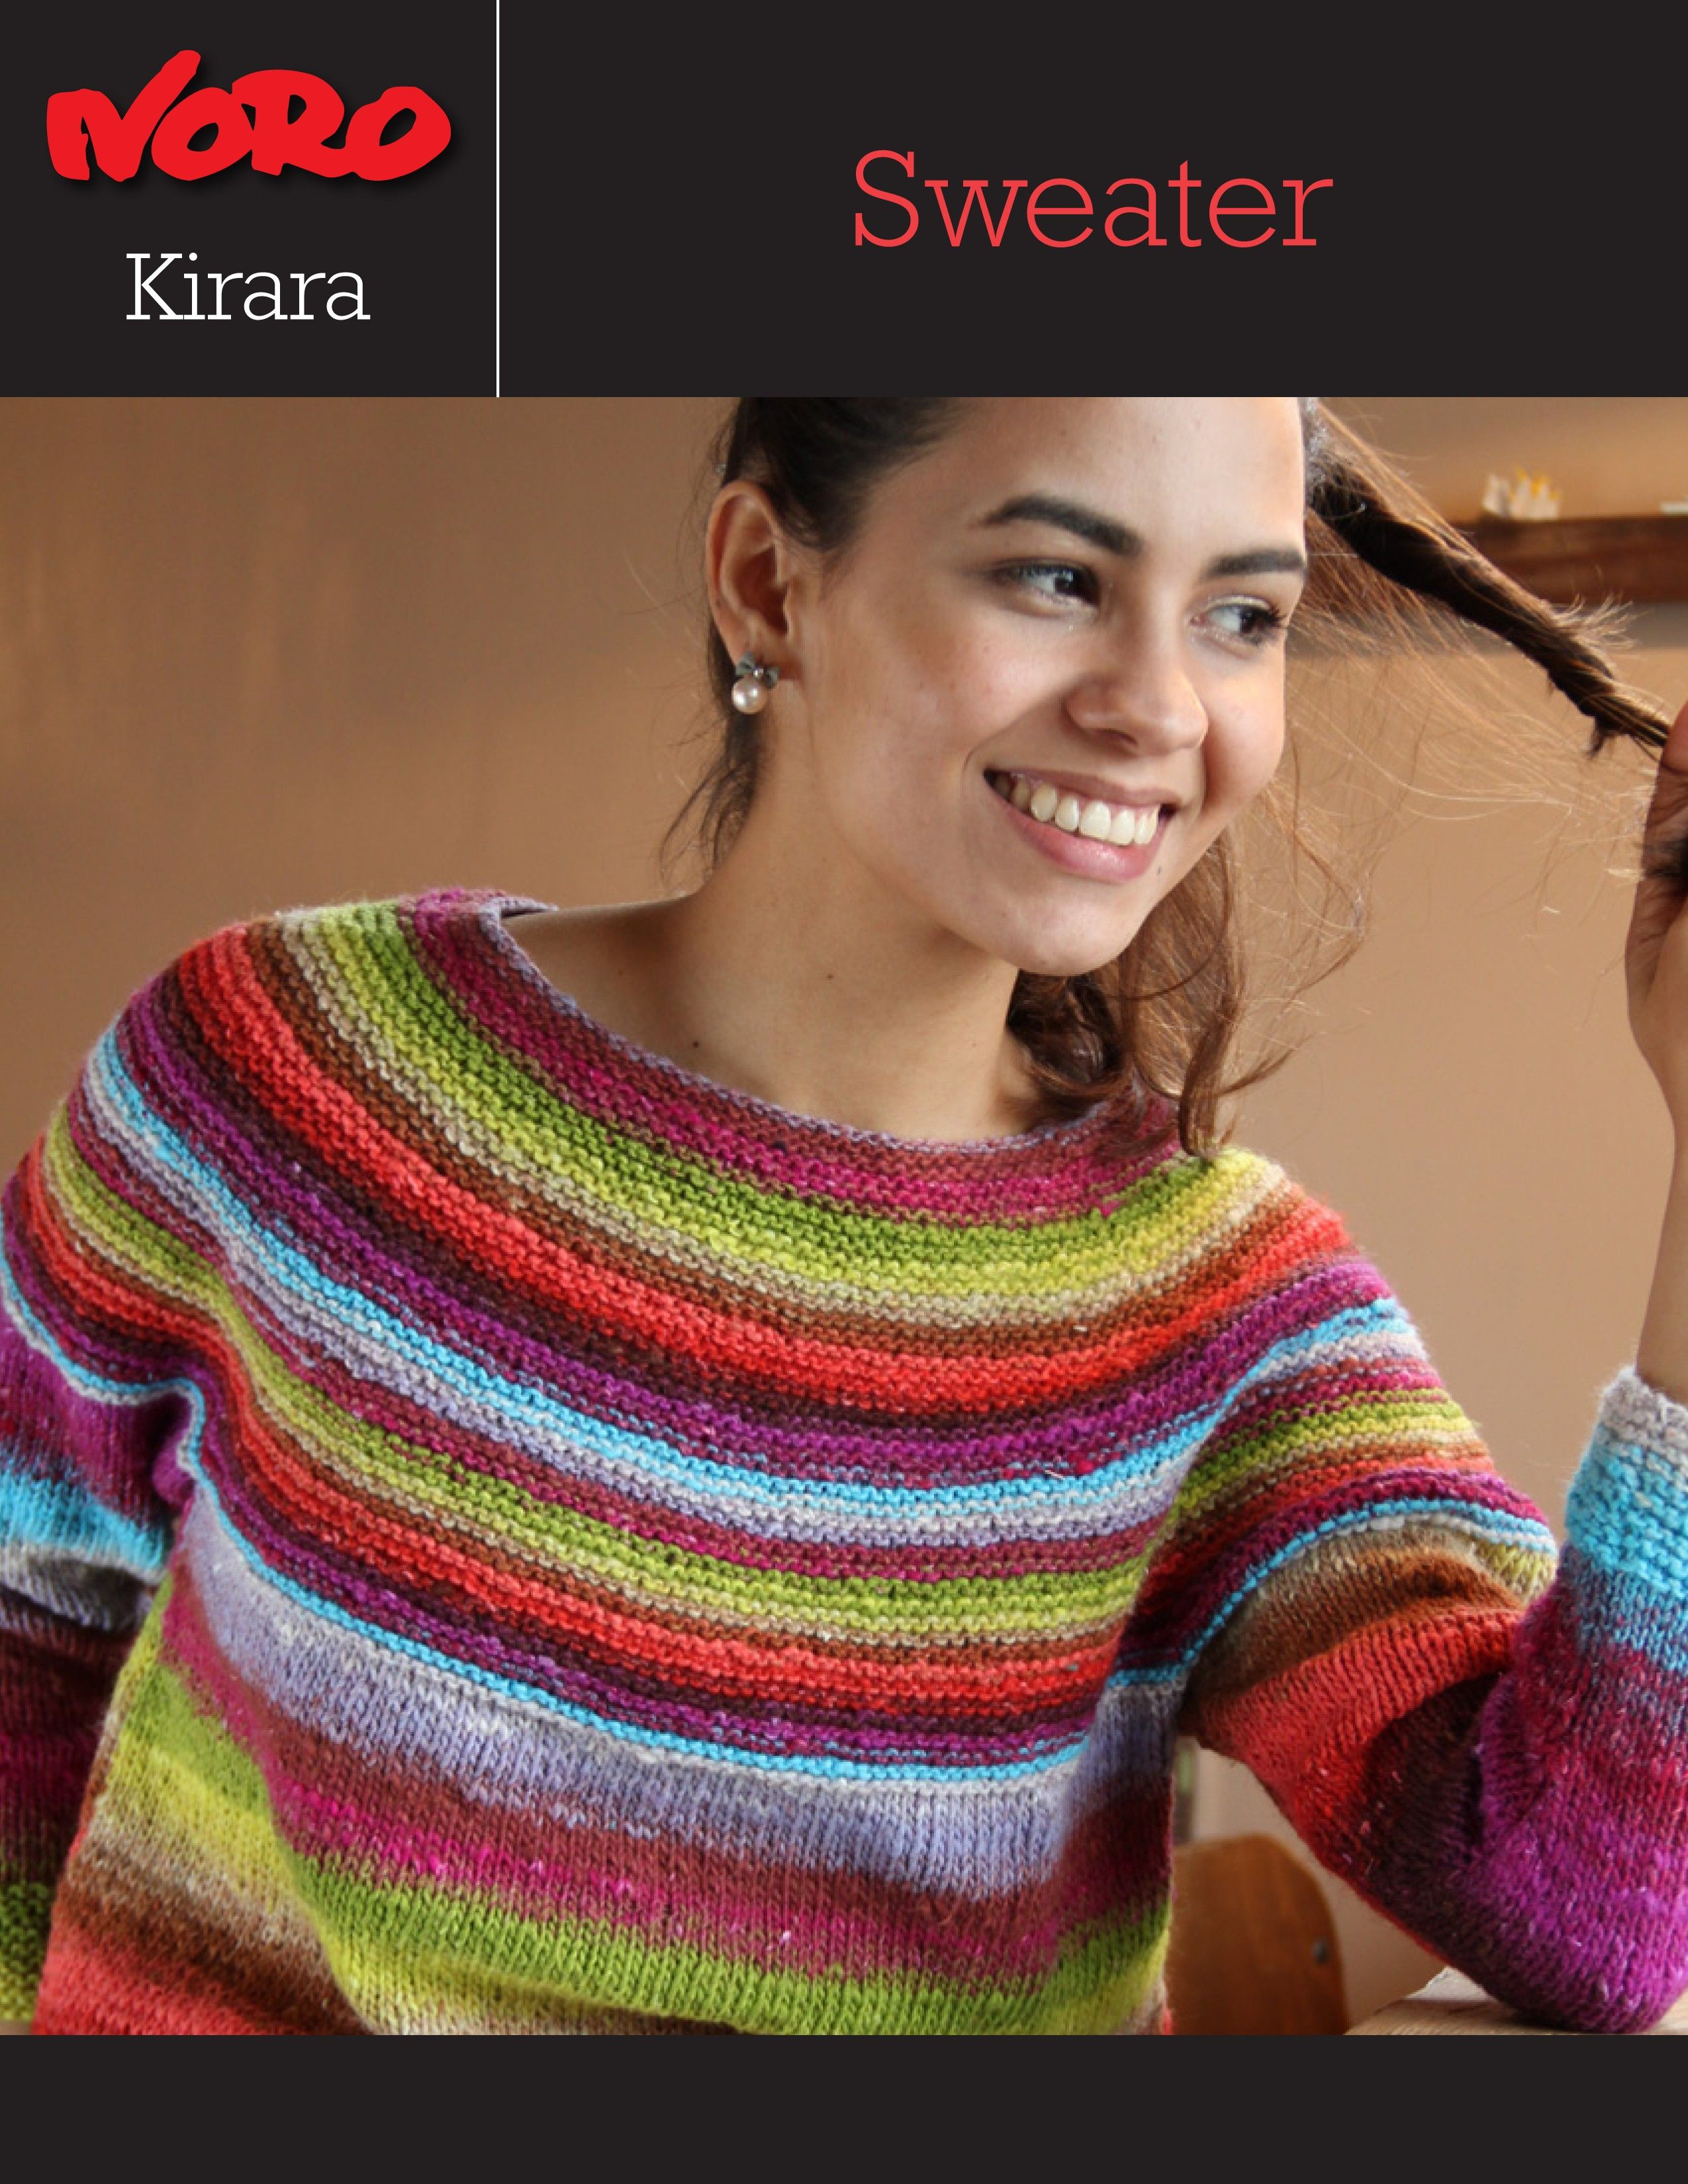 Knitting Fever Noro : Kirara sweater y knitting fever yarns euro